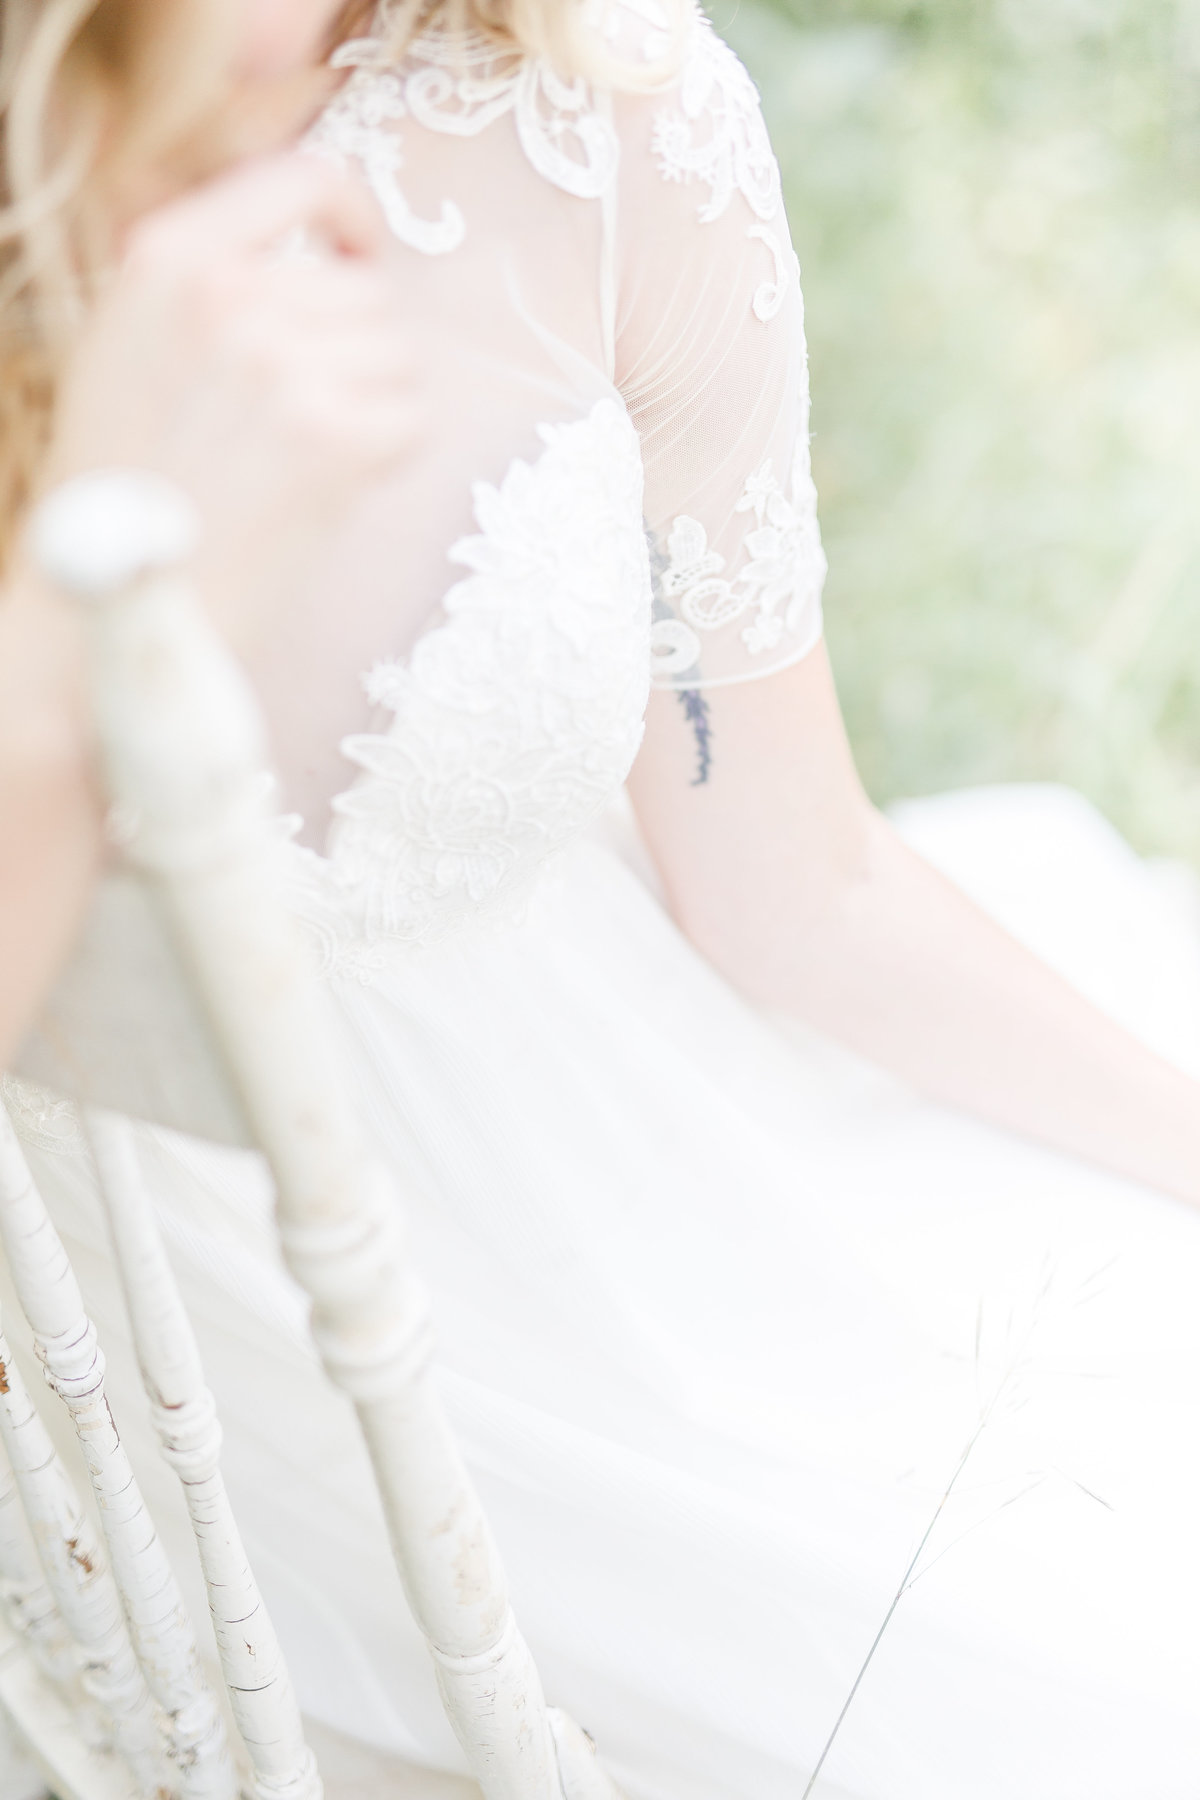 Kailey - Styled Shoot - New Edits-120